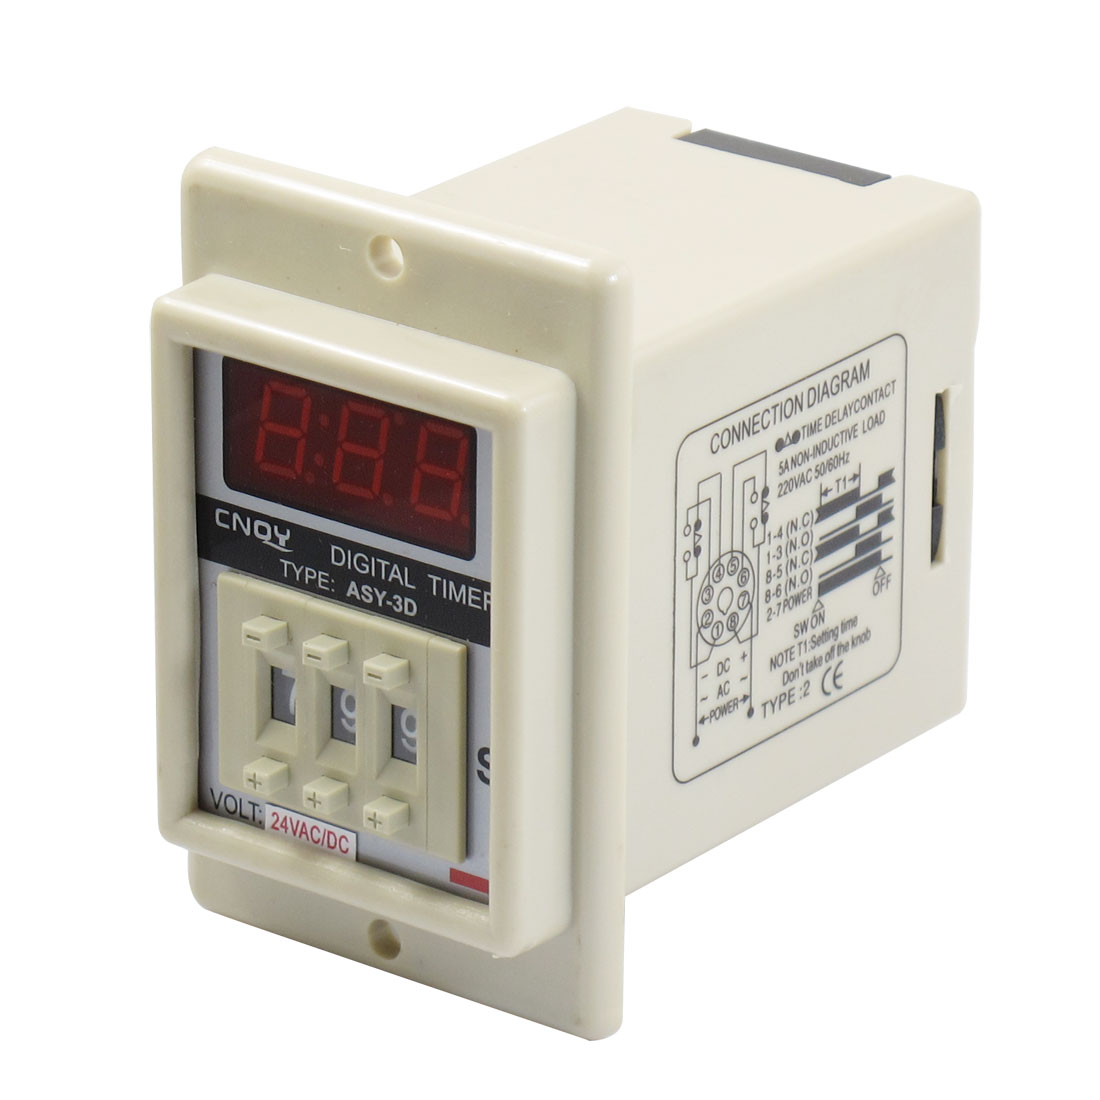 AC/DC 24V 8 Pin 1-999 Second Digital Timer Time Delay Relay Beige ASY-3D